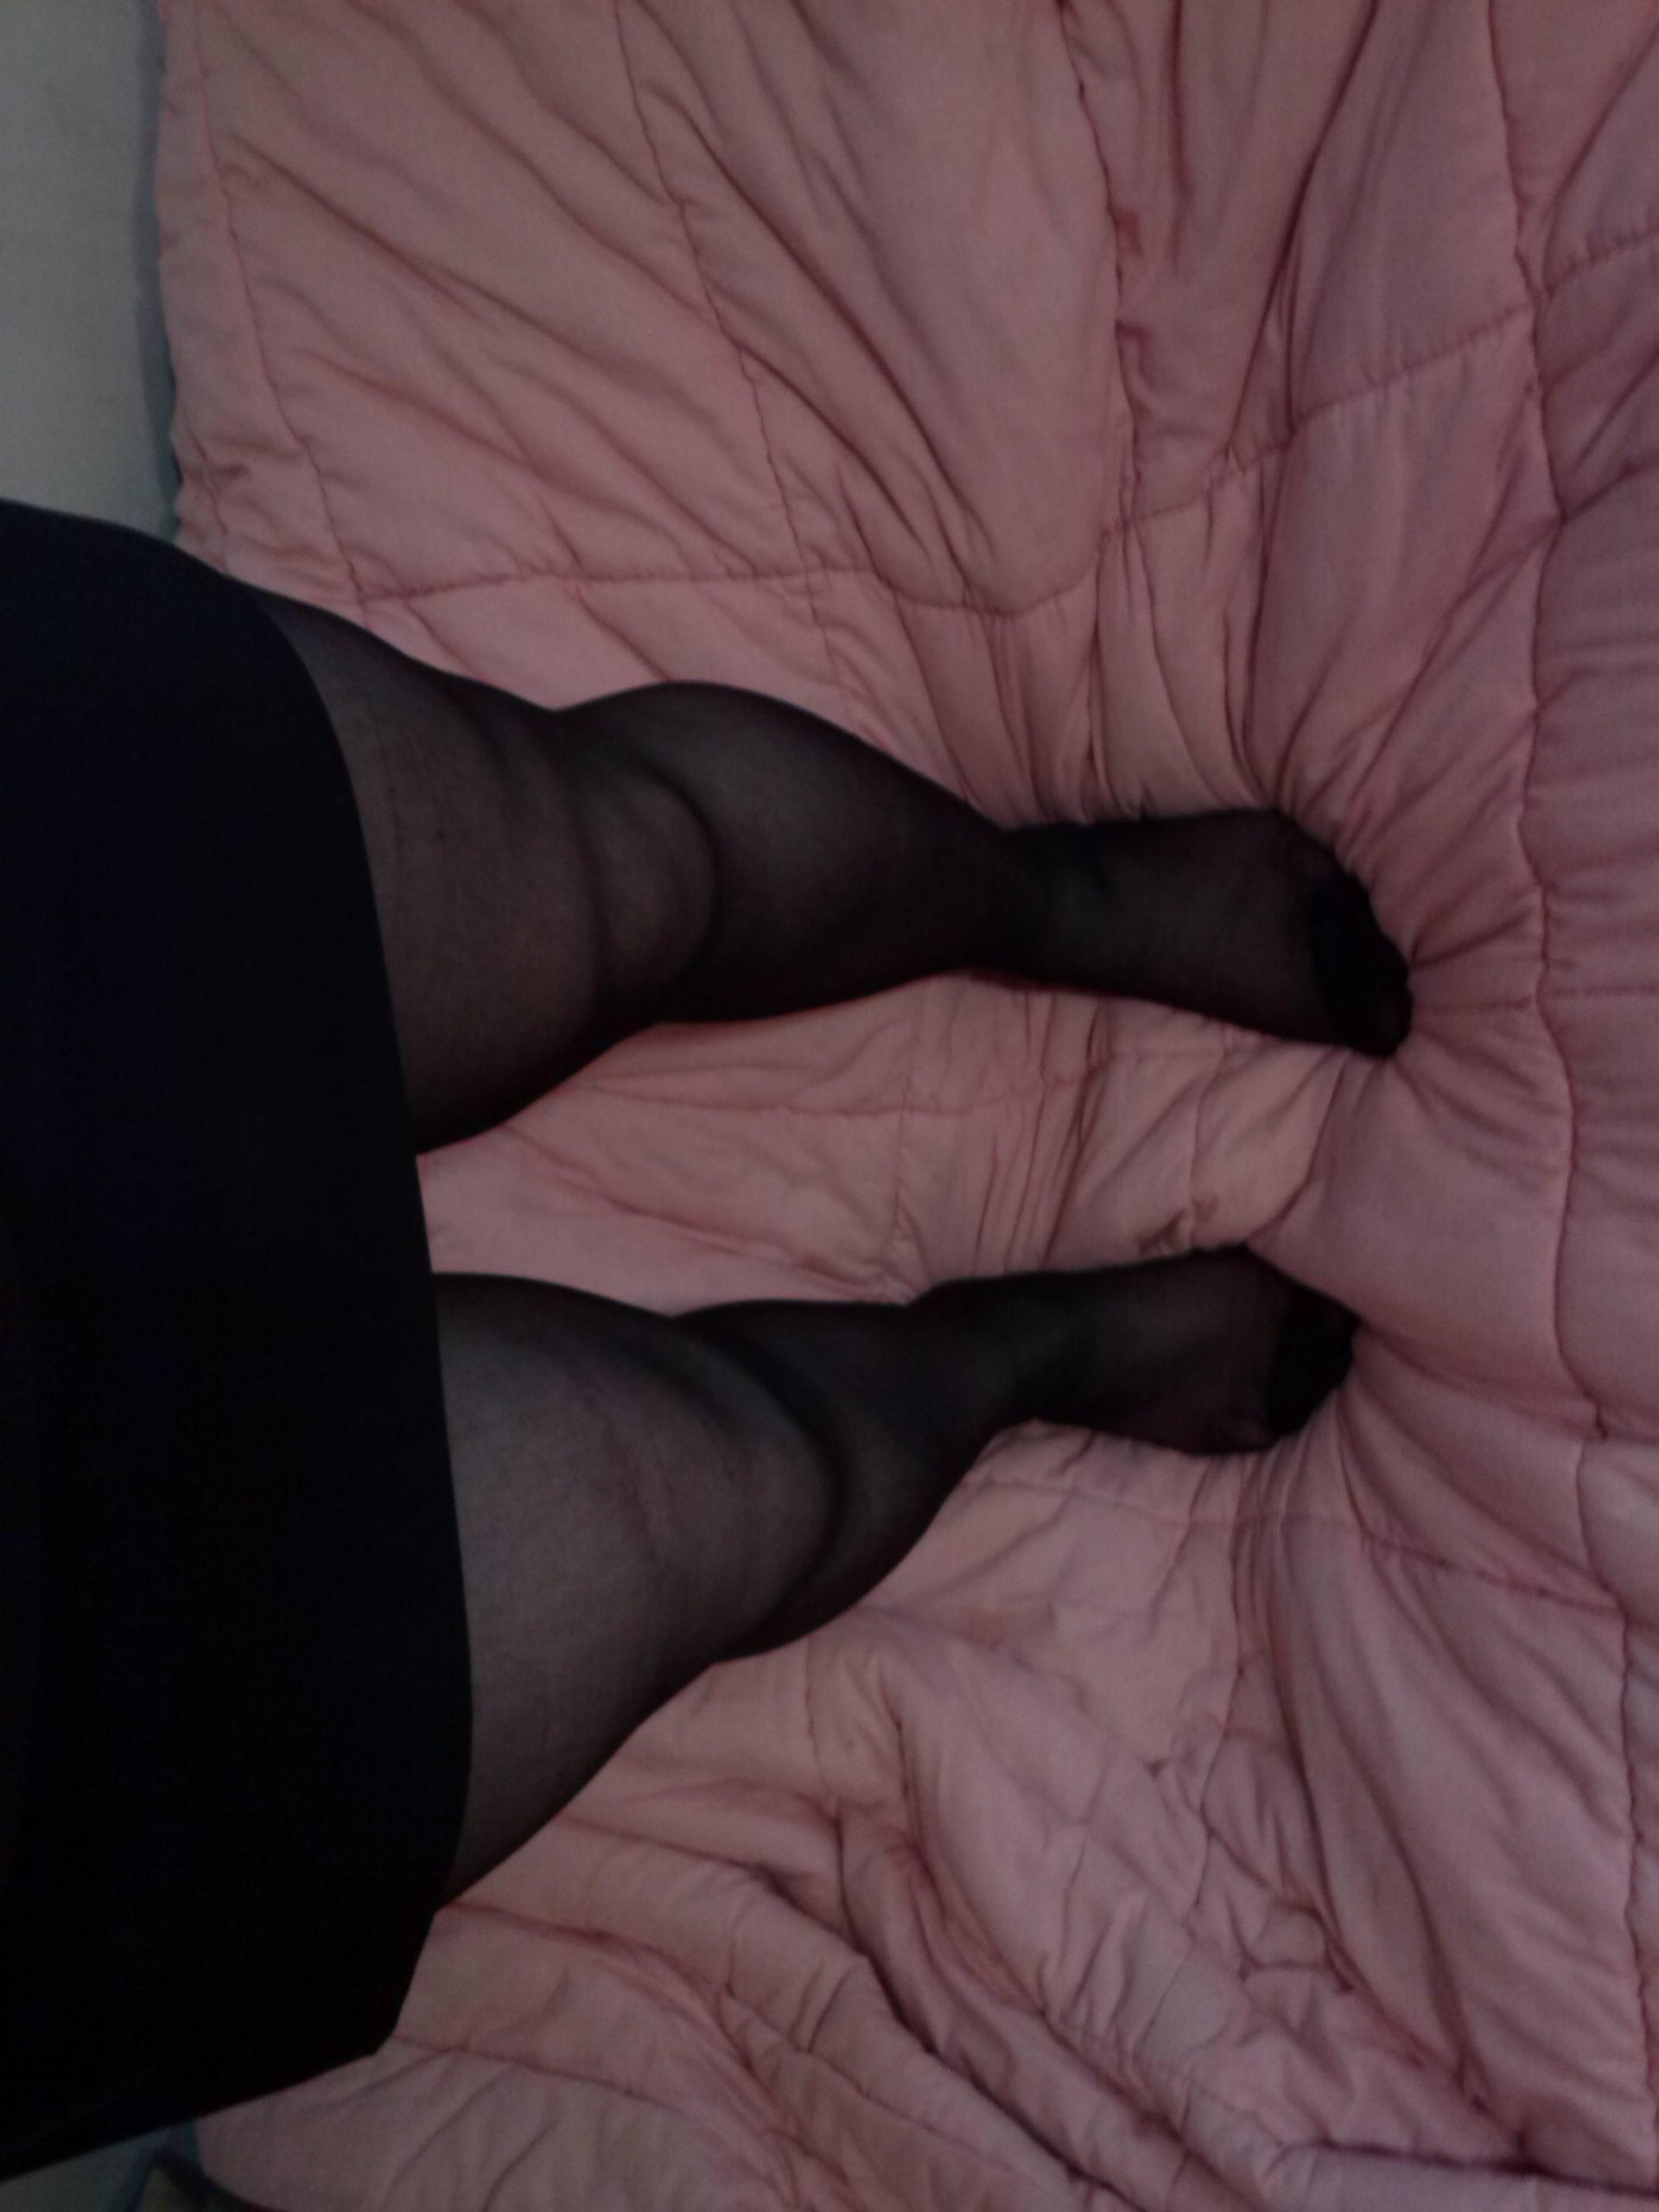 feet, girl, legs, of, stockings